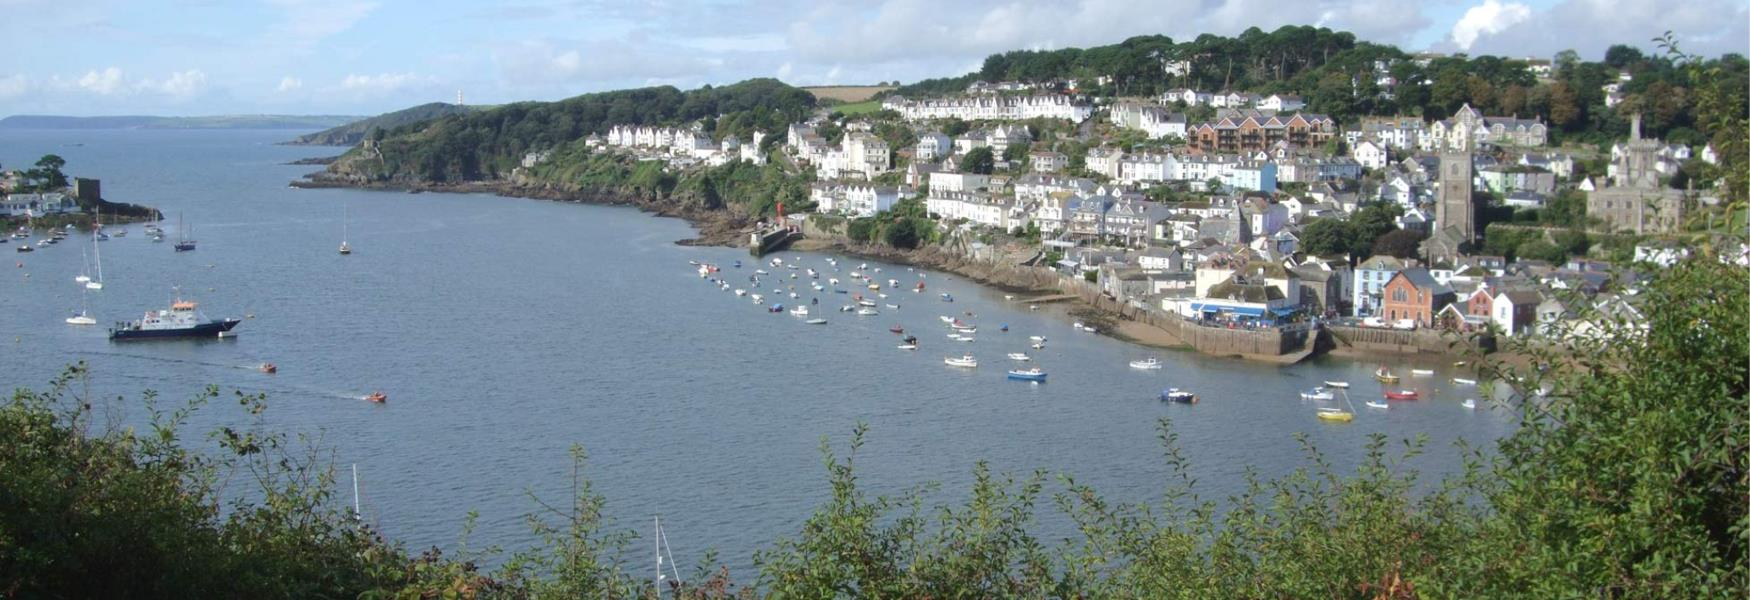 Fowey from the Hall Walk